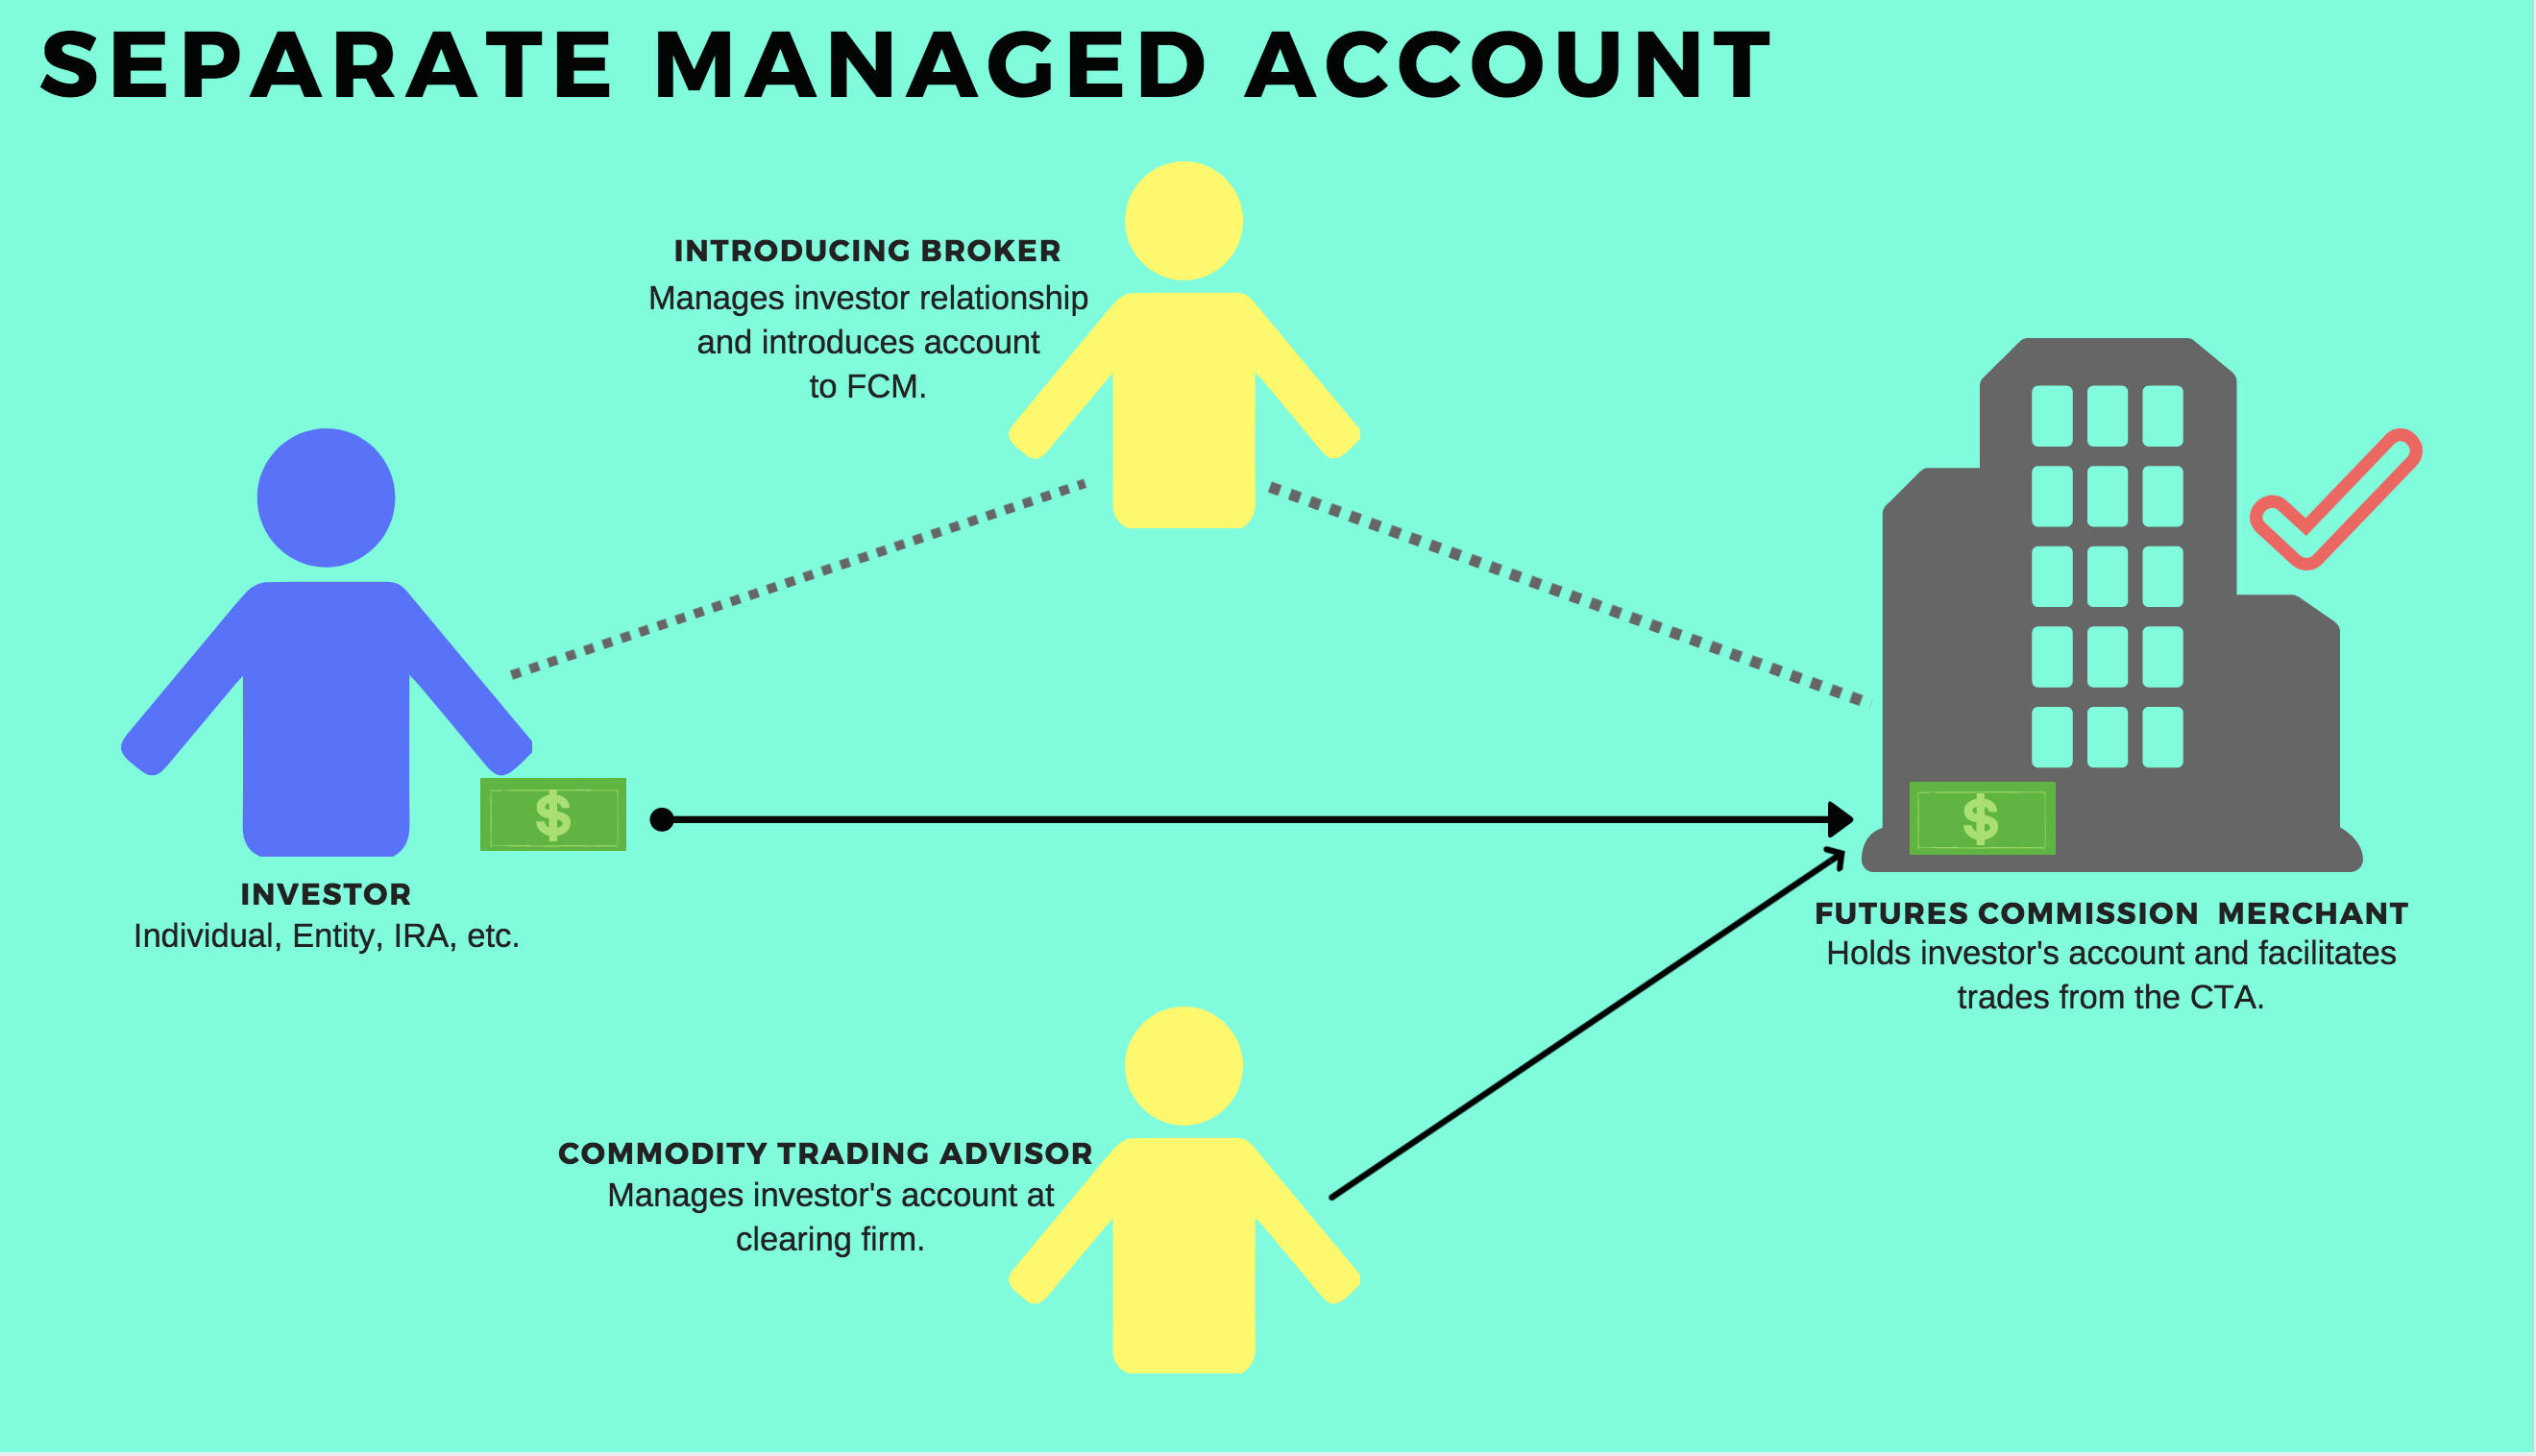 Separate Managed Account